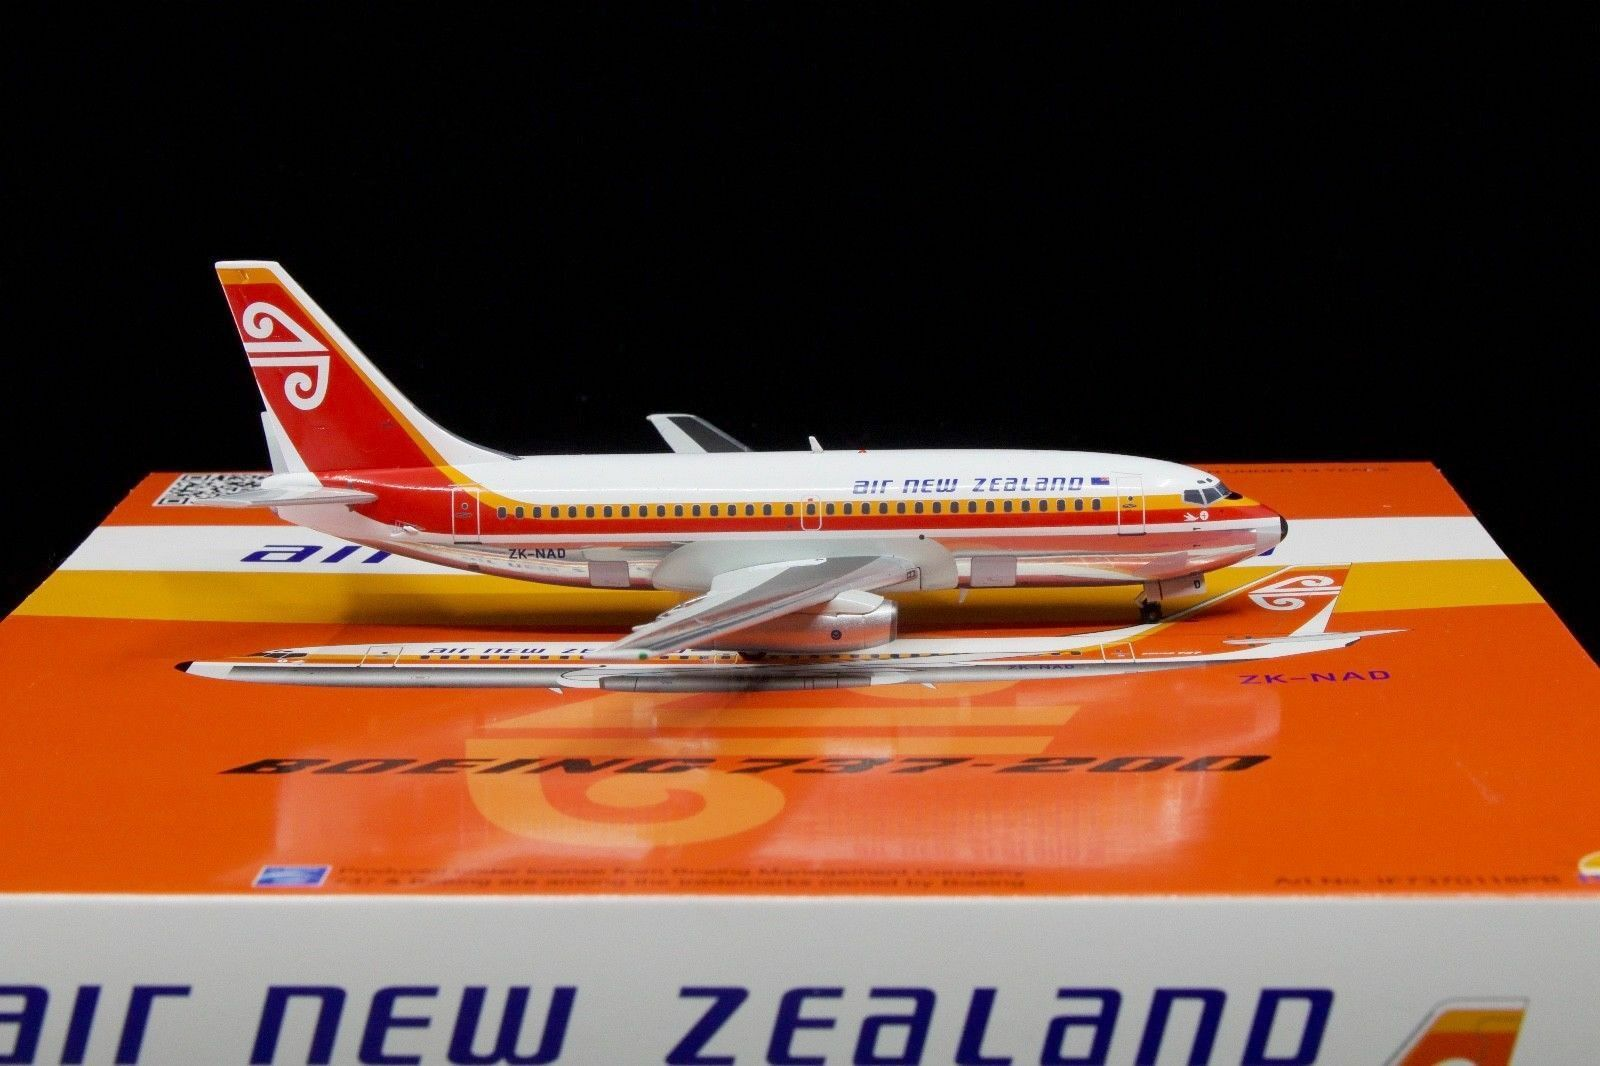 IF7370118PB 1 200 AIR NEW ZEALAND ZEALAND ZEALAND B737-200 ZK-NAD POLISHED W STAND LTD EDN 60 PC d0befe